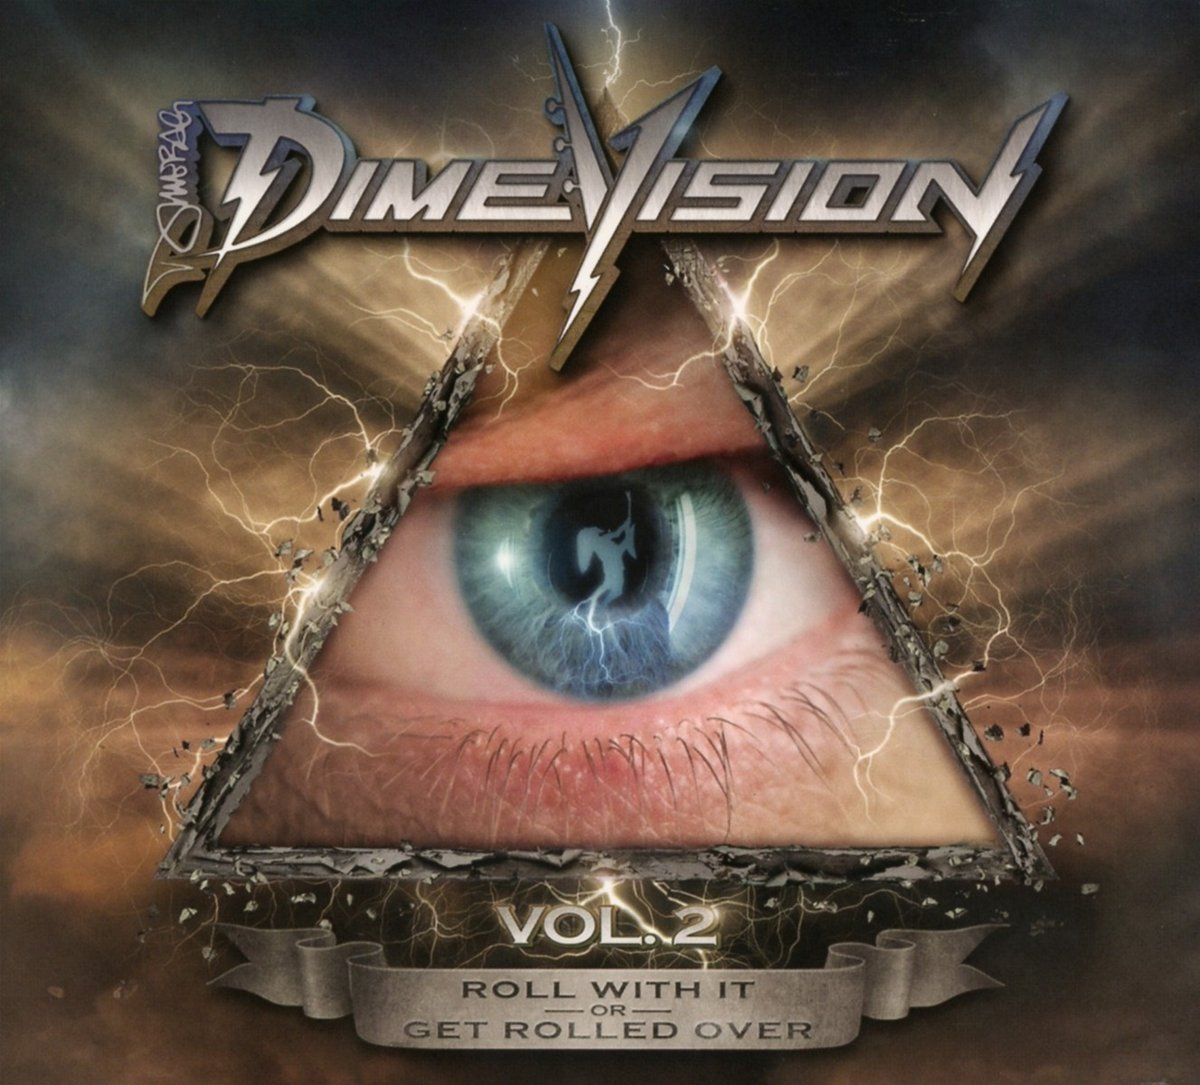 DVD : Dimebag Darrell - Dimevision, Vol. 2: Roll With It Or Get Rolled Over (With CD, 2 Disc)